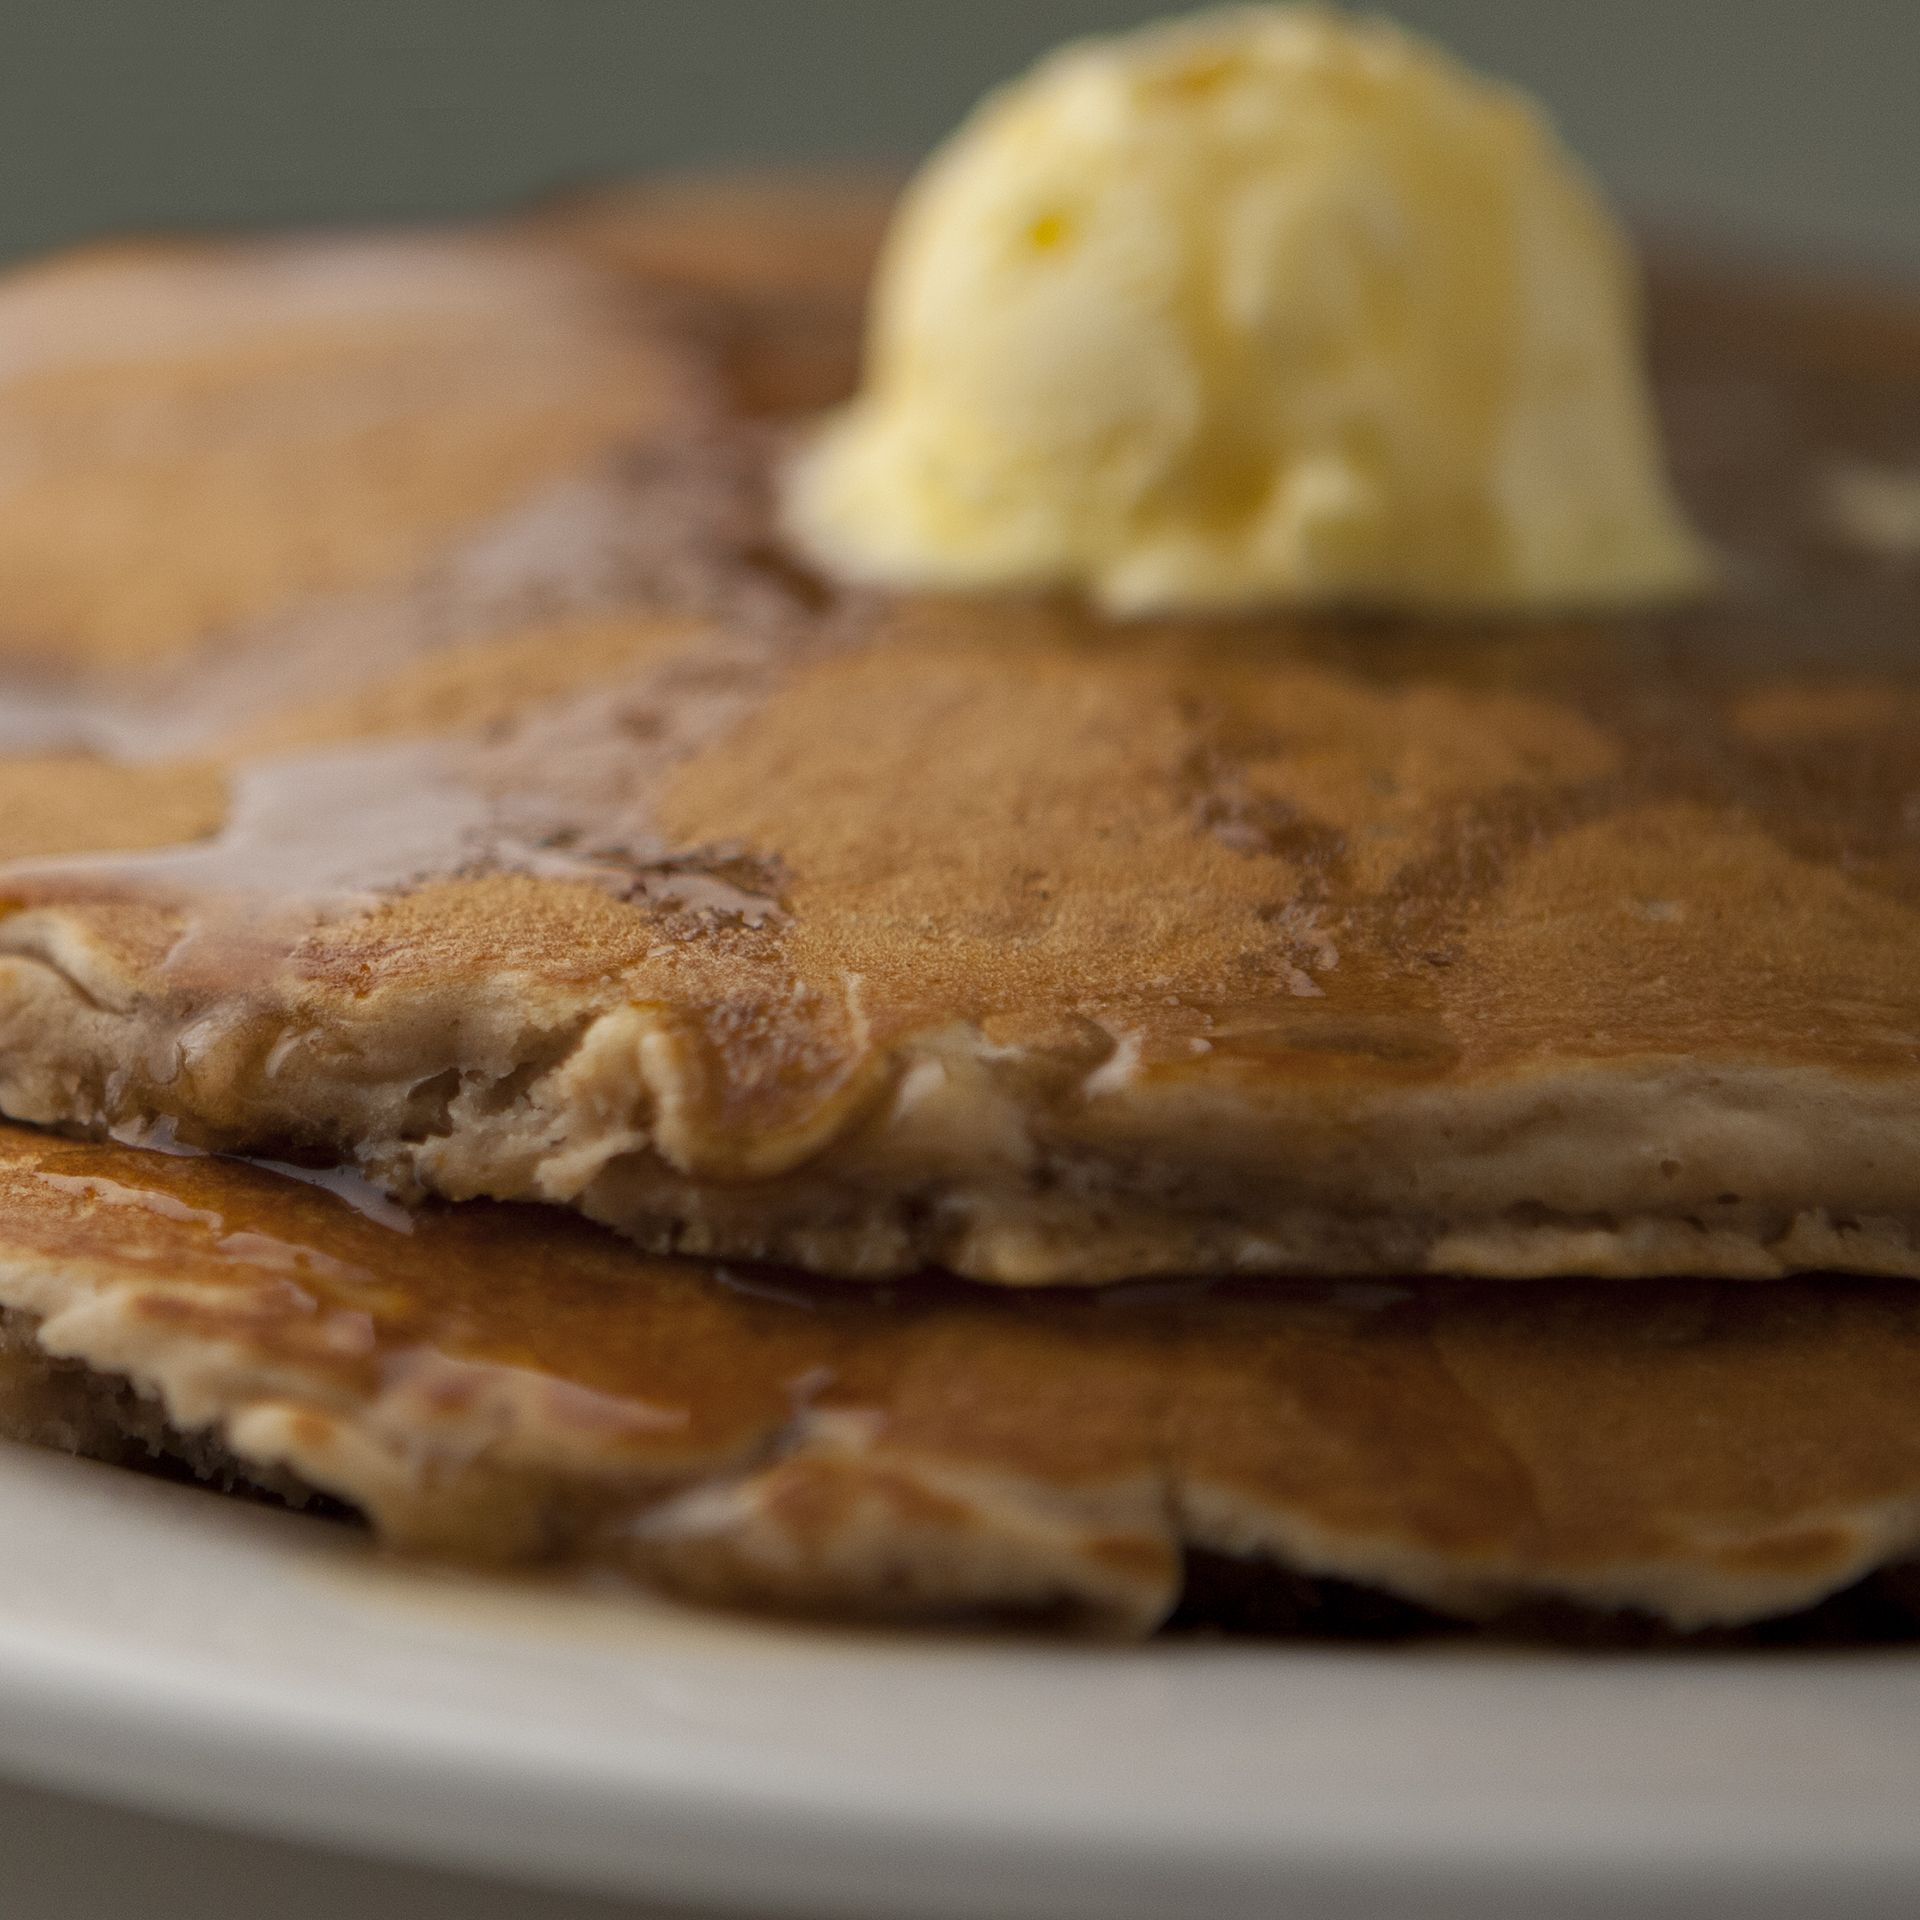 American Homestyle Kitchen Corkys Homestyle Kitchen And Bakery Pancakes From Scratch